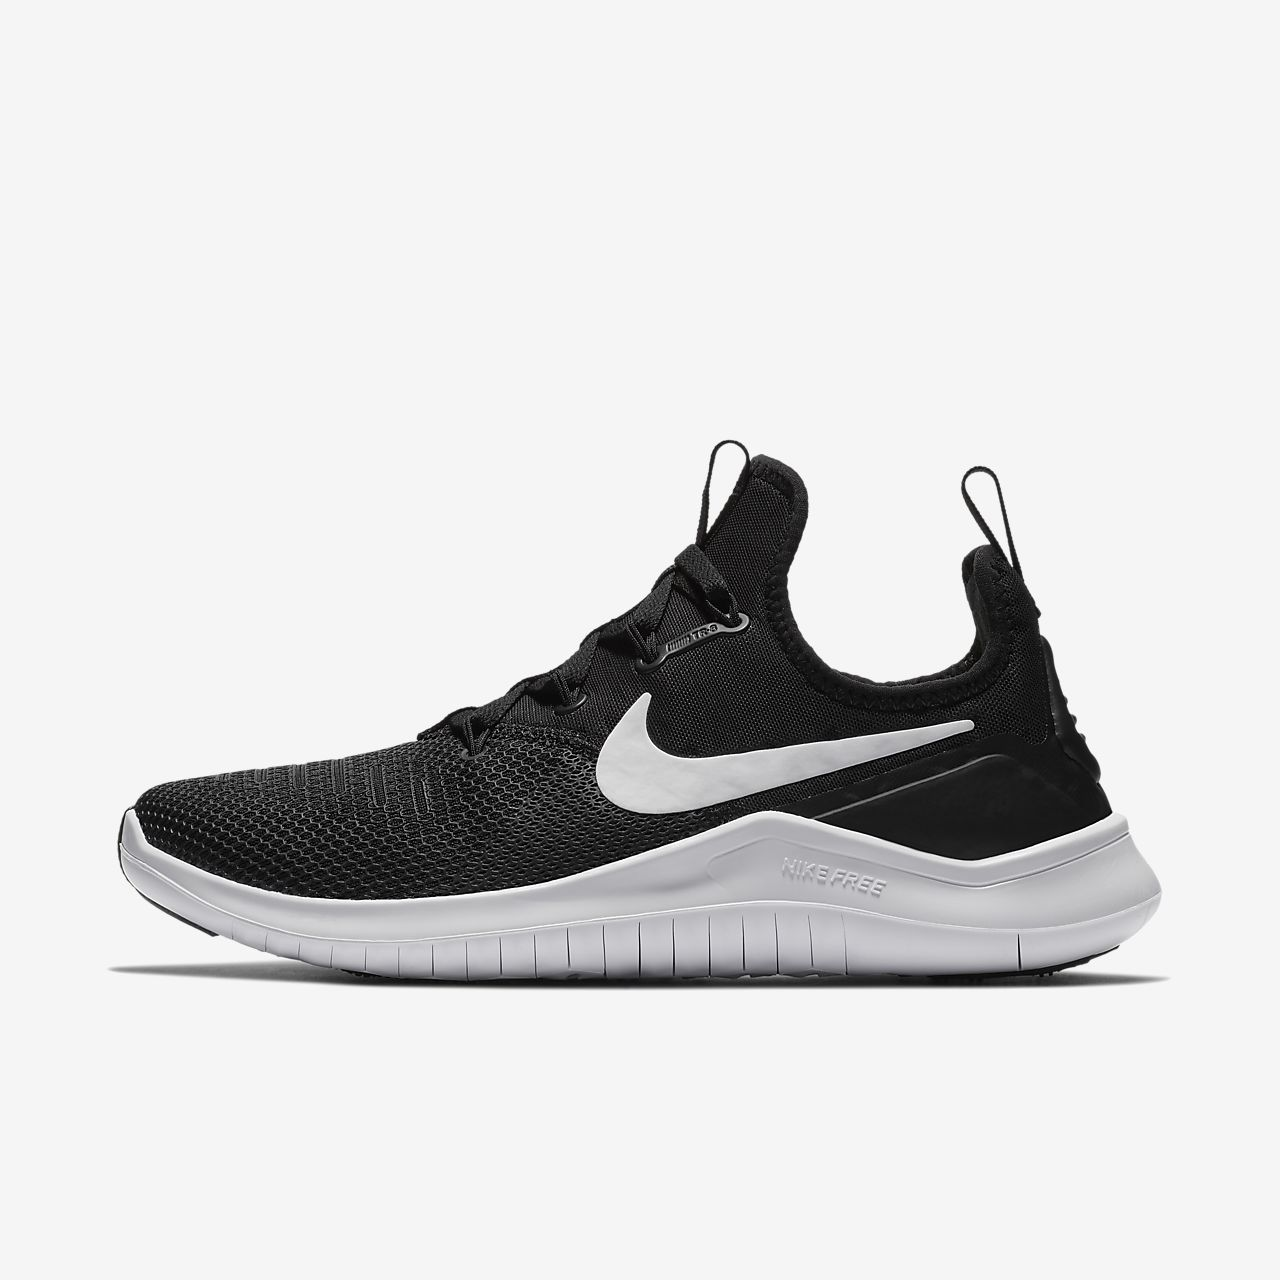 243d73f79f87 Nike Free TR8 Women s Gym HIIT Cross Training Shoe. Nike.com GB